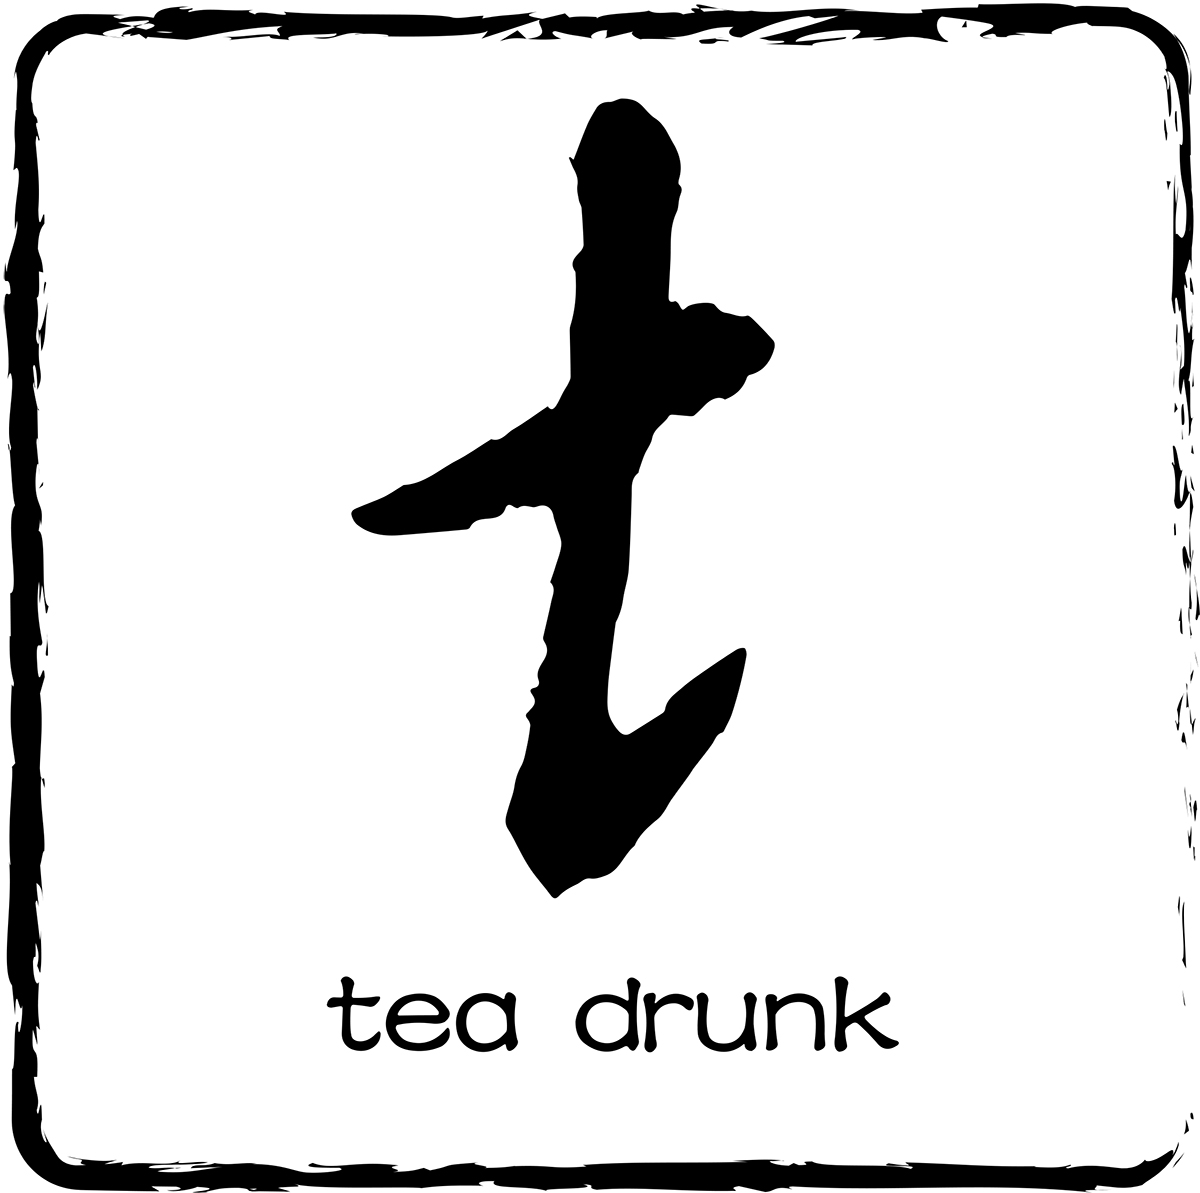 TEA DRUNK LOGO 800.jpg